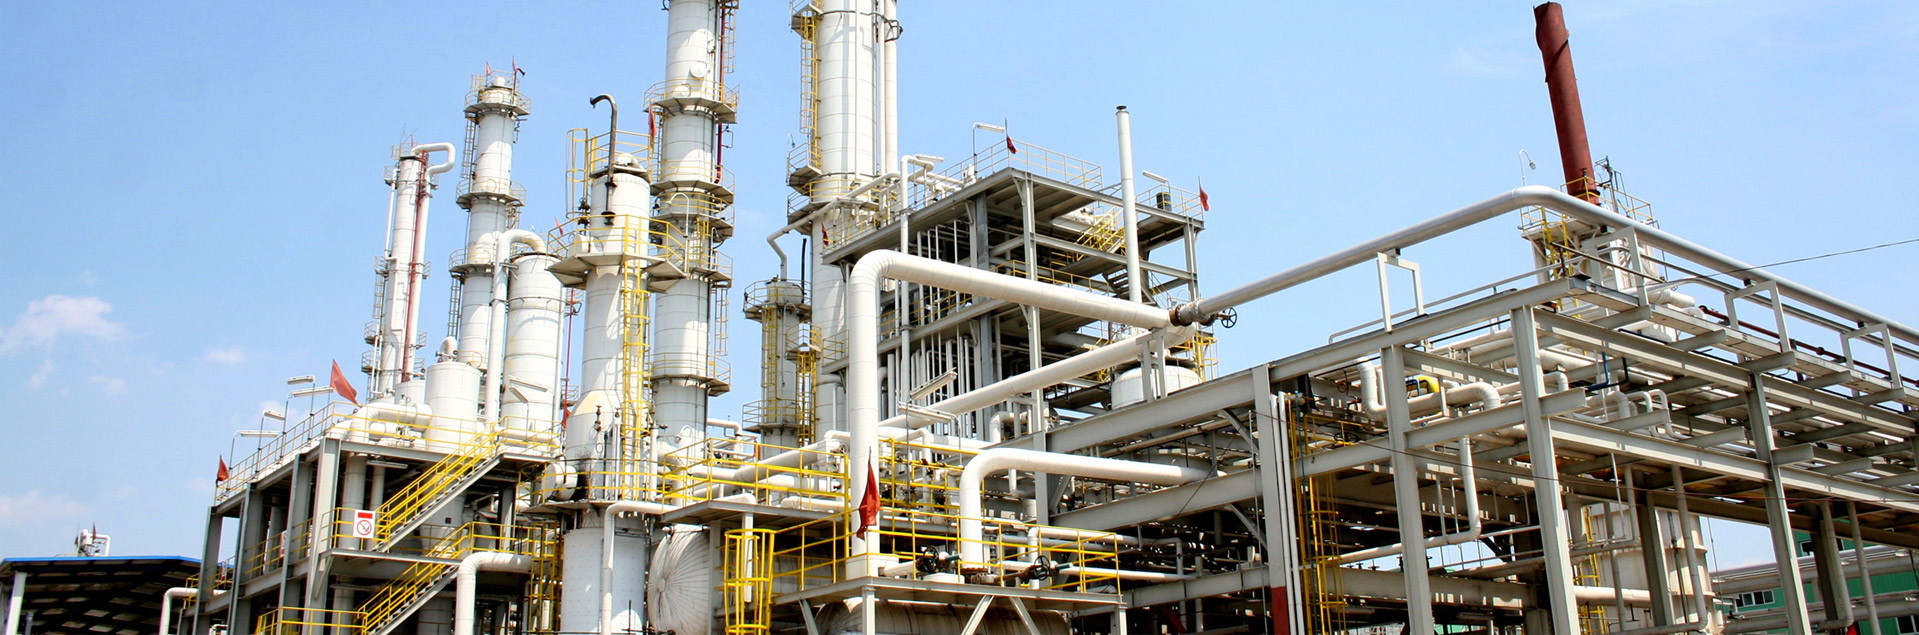 PROVIDE HIGH QUALITY CHEMICAL PRODUCTS